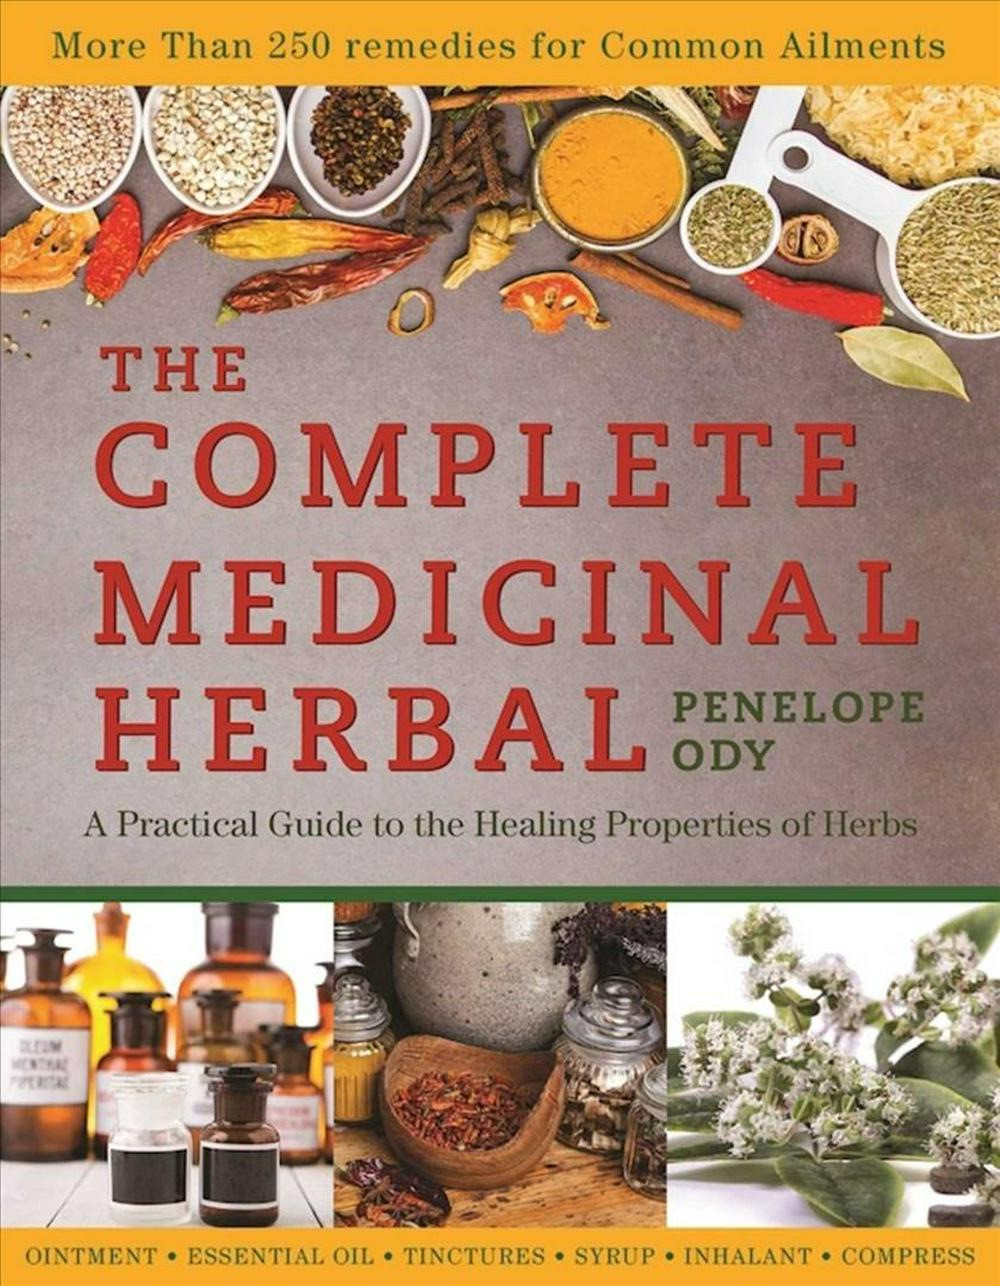 Complete Medicinal Herbal: A Practical Guide to the Healing Properties of Herbs, with More Than 250 Remedies for Common Ailments